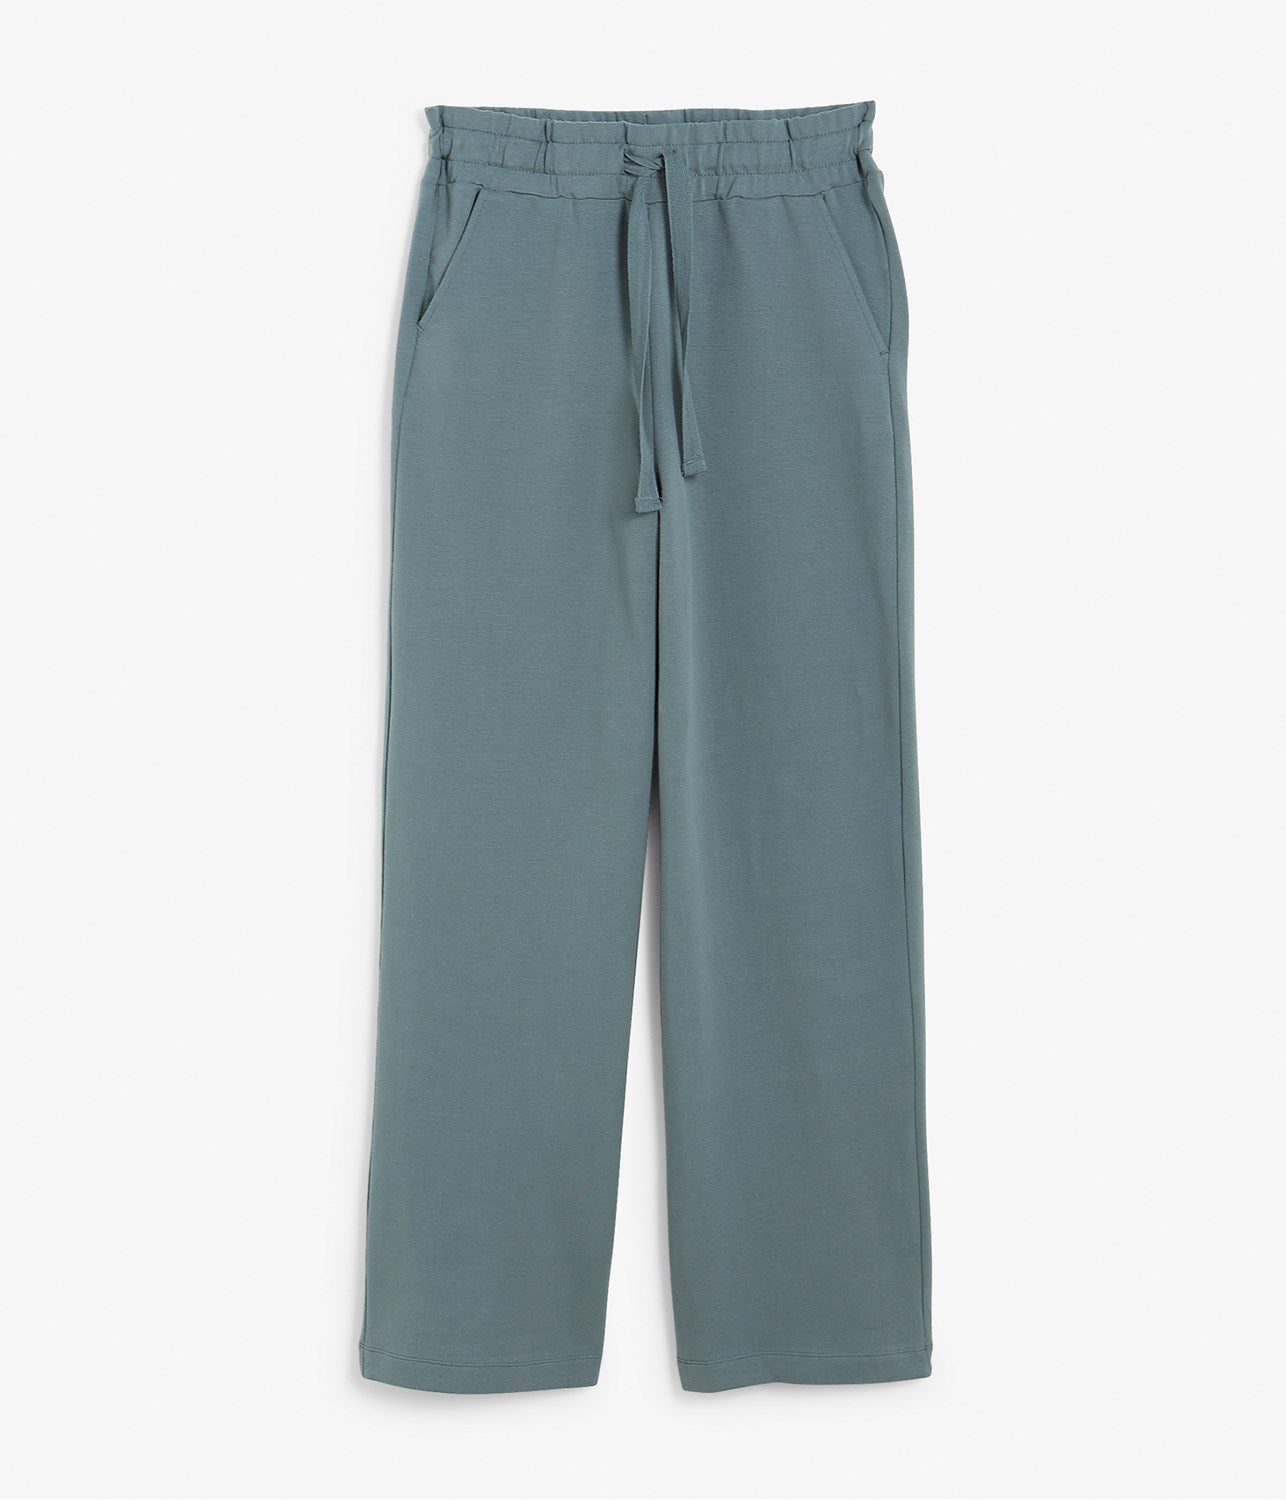 Womens teal wide leg drawstring trousers